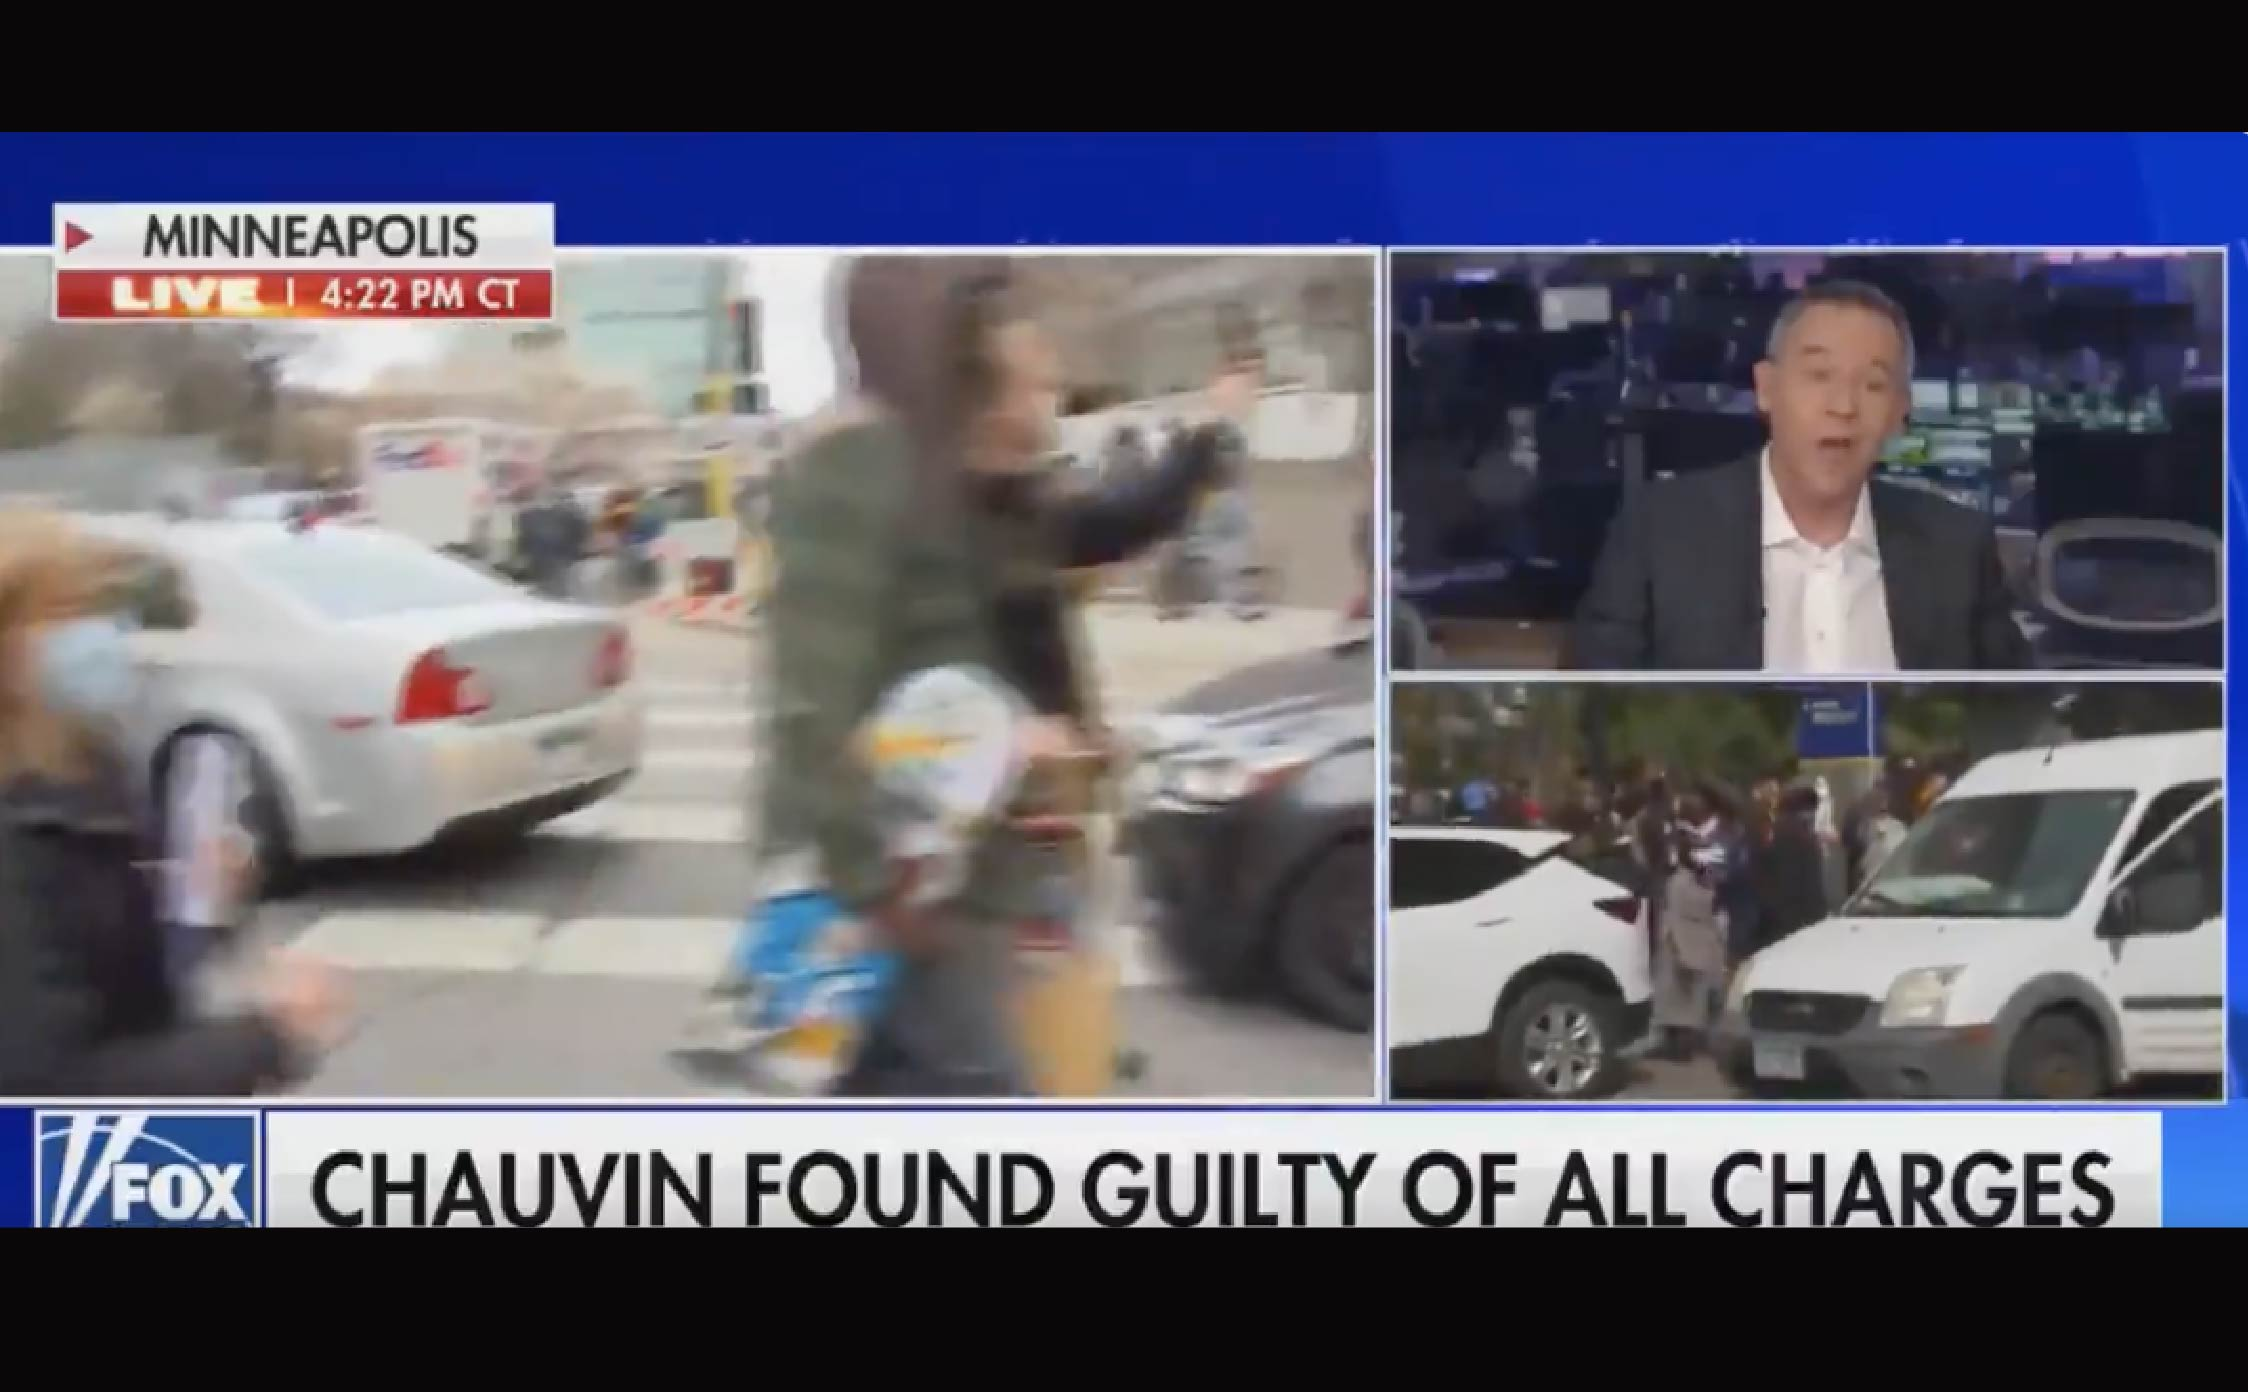 [VIDEO] Greg Gutfeld Causes a Quite a Stir With Controversial Statement on Today's Verdict